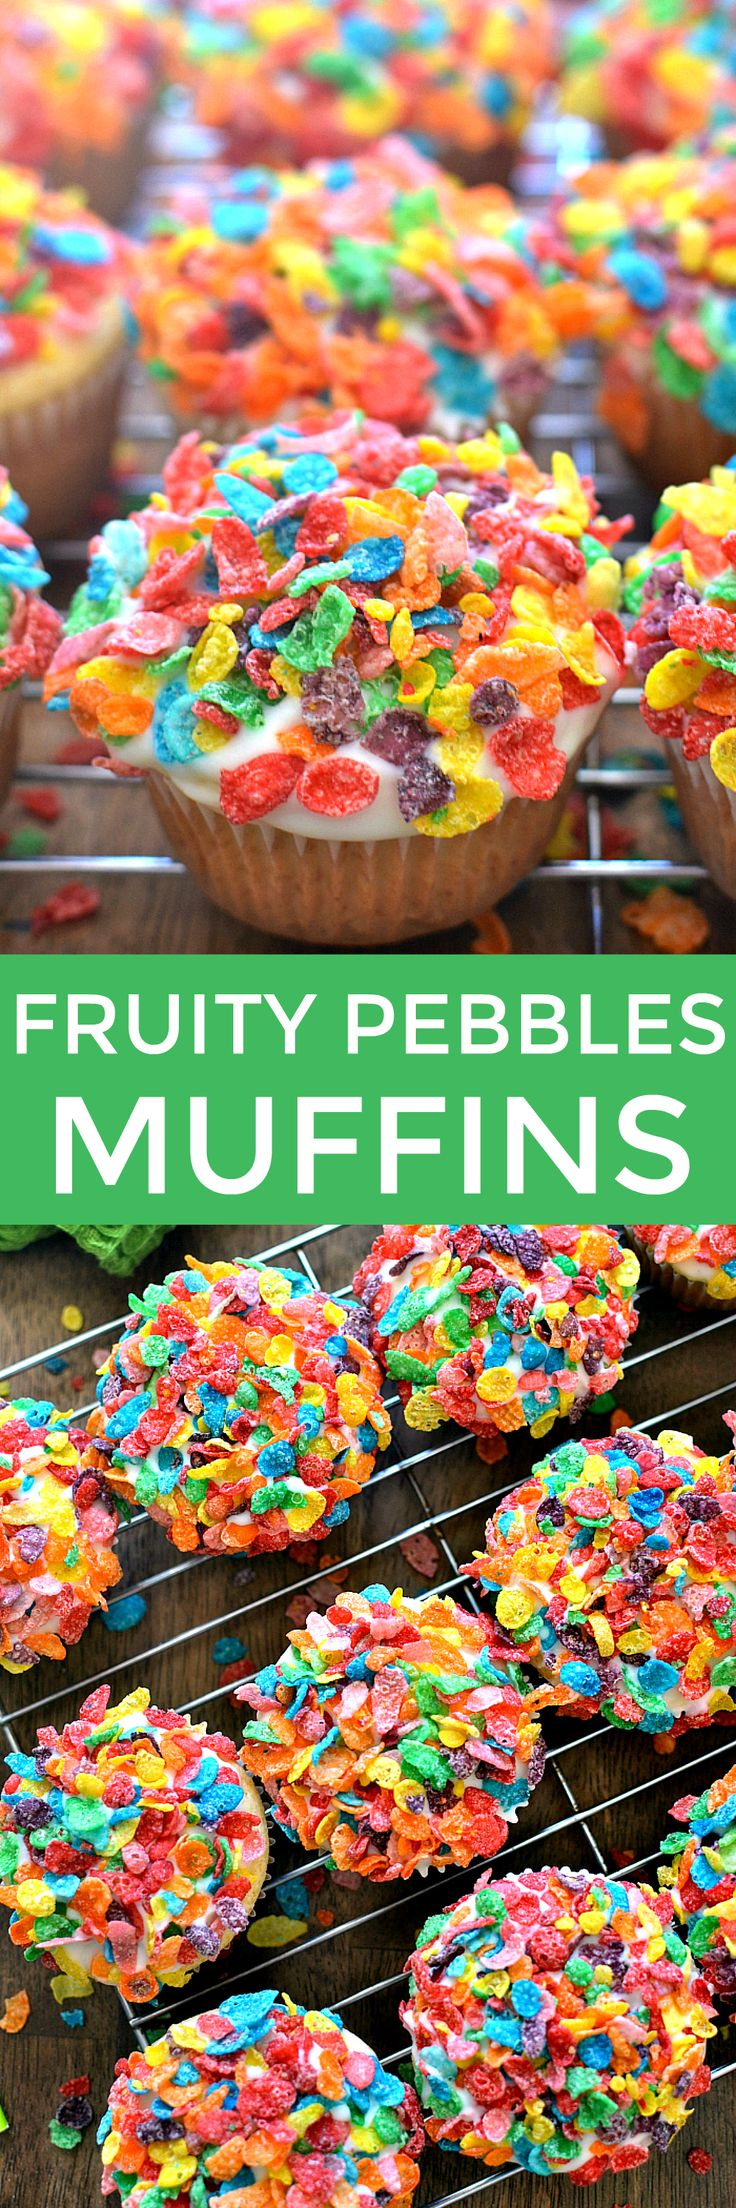 These Fruity Pebbles Muffins are the perfect St. Patrick's Day treat! Vanilla muffins topped with white chocolate and Fruity Pebbles...delicious for breakfast or any time of day!